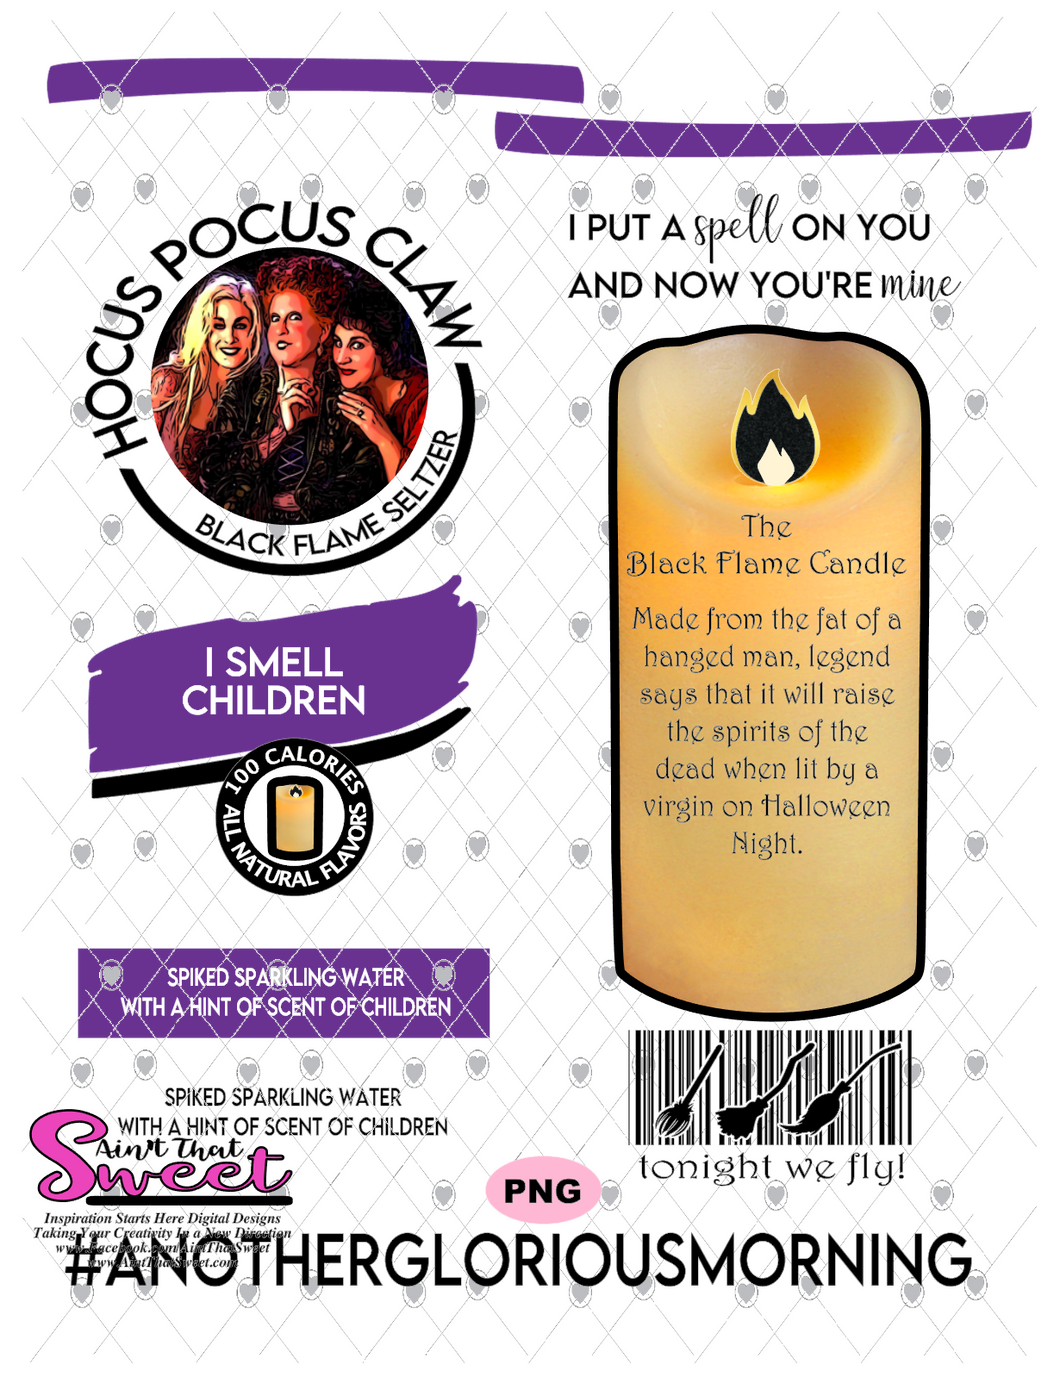 Hocus Pocus Claw-Black Flame Seltzer, I Smell Children - PNG Only-Sublimation, Printing, Waterslide